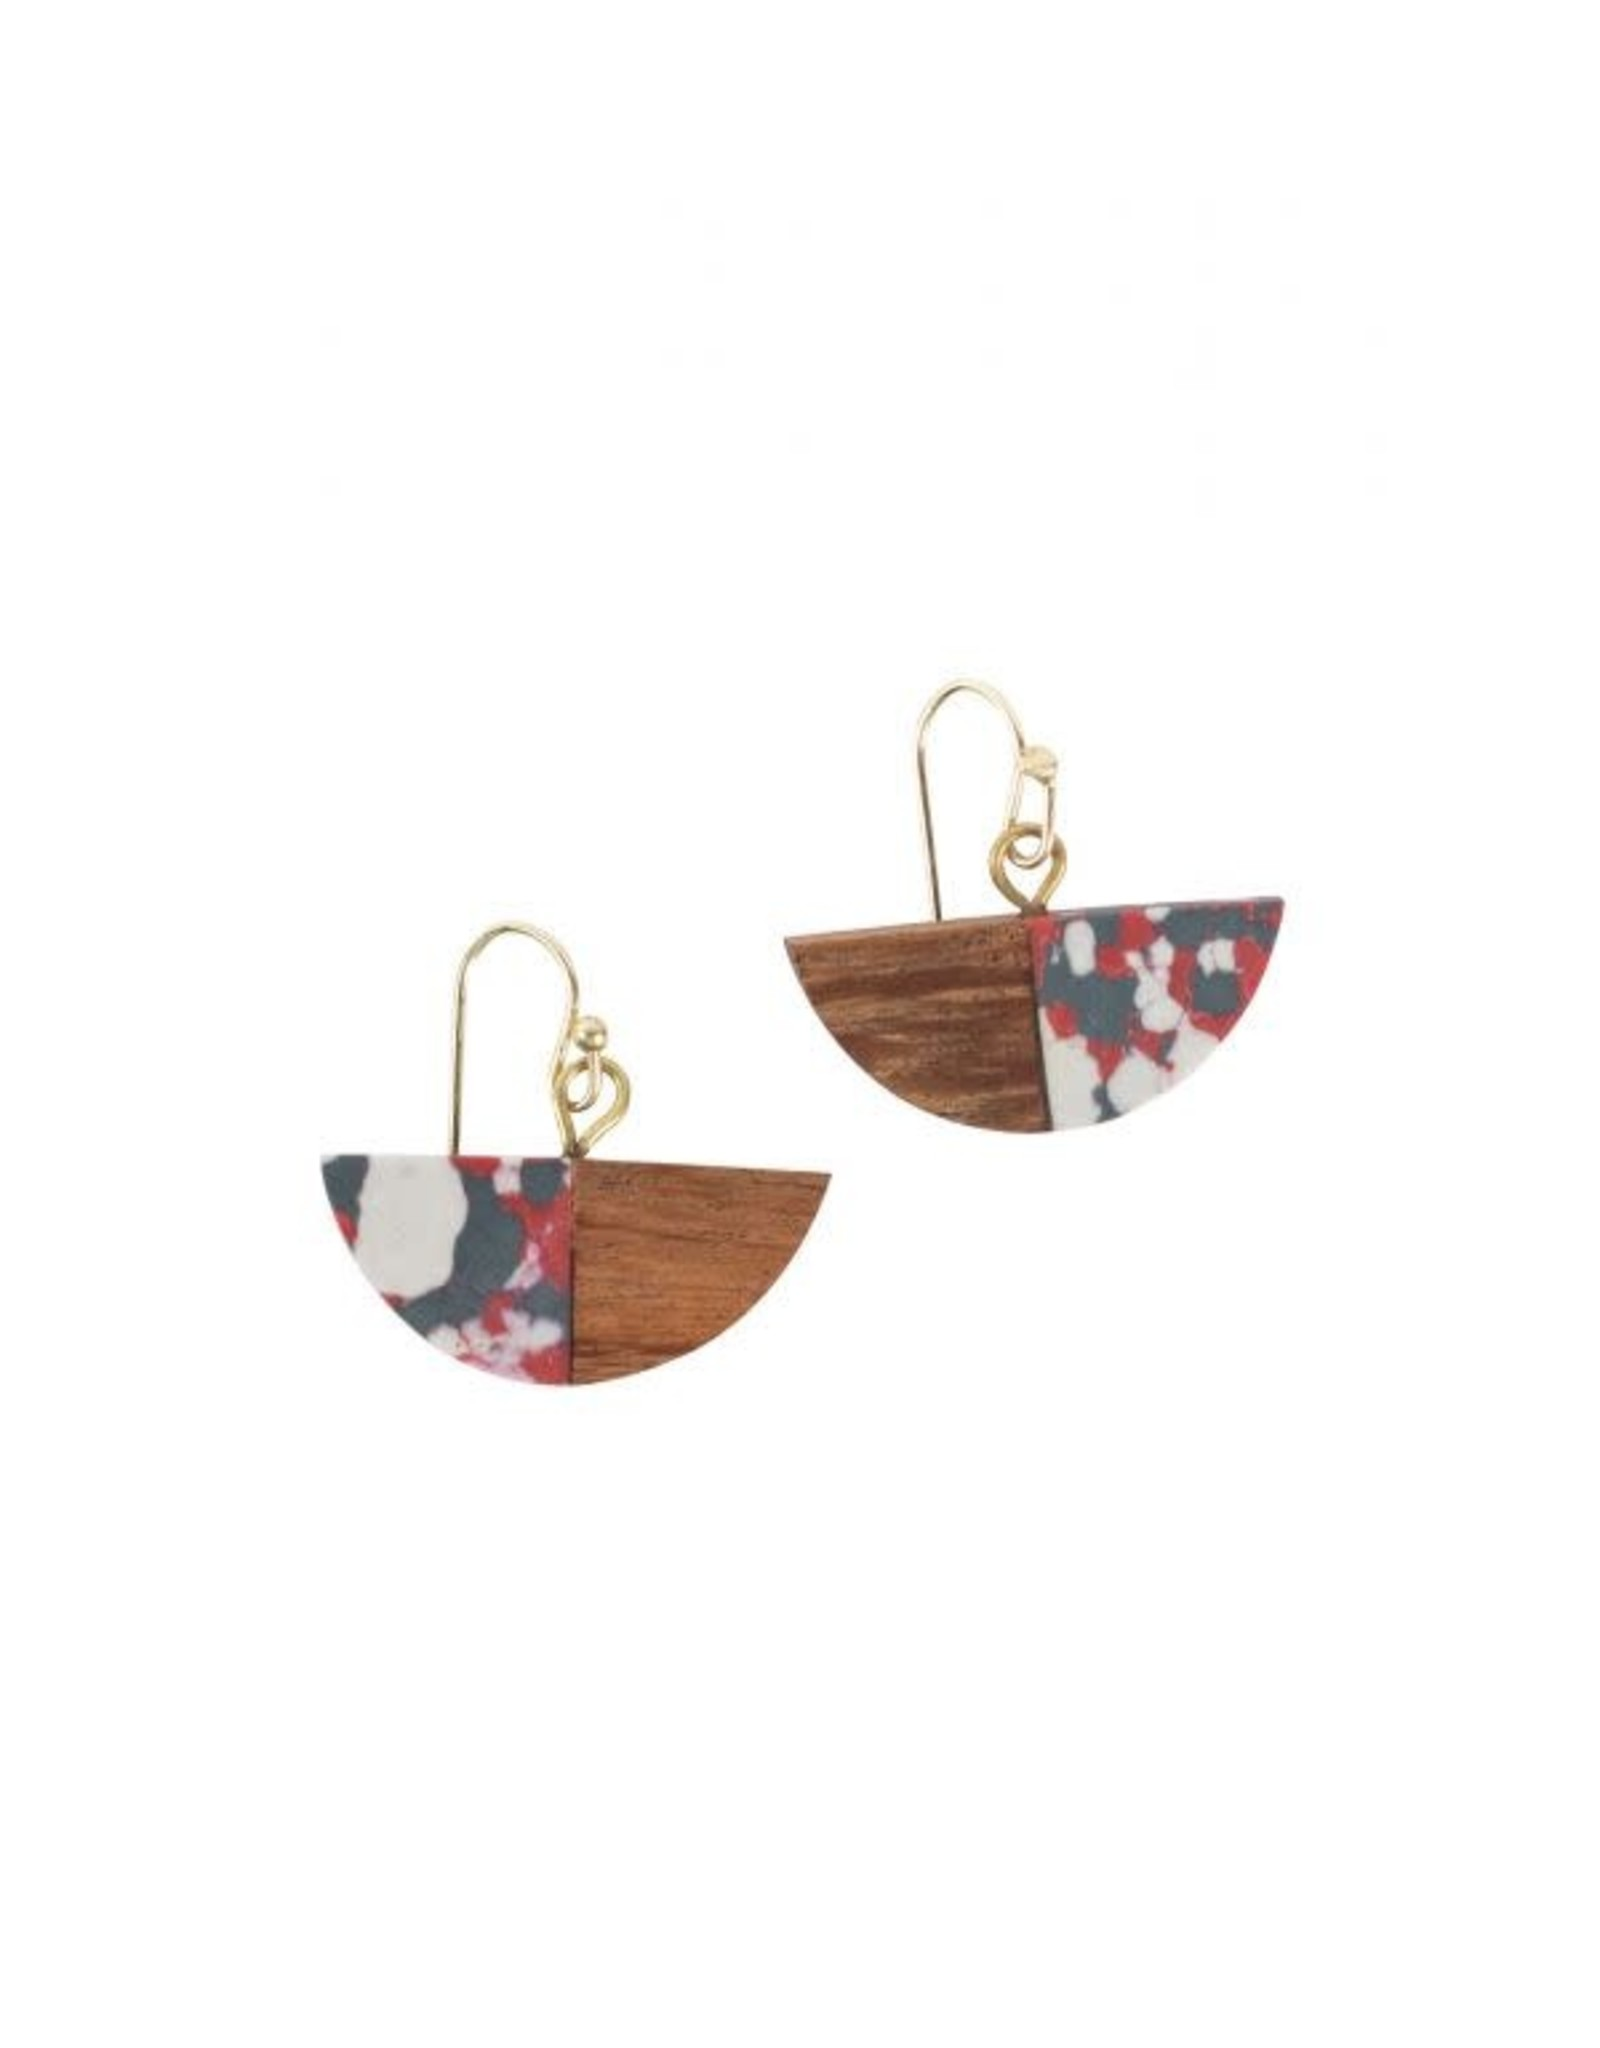 Fire and Wood Earrings, India